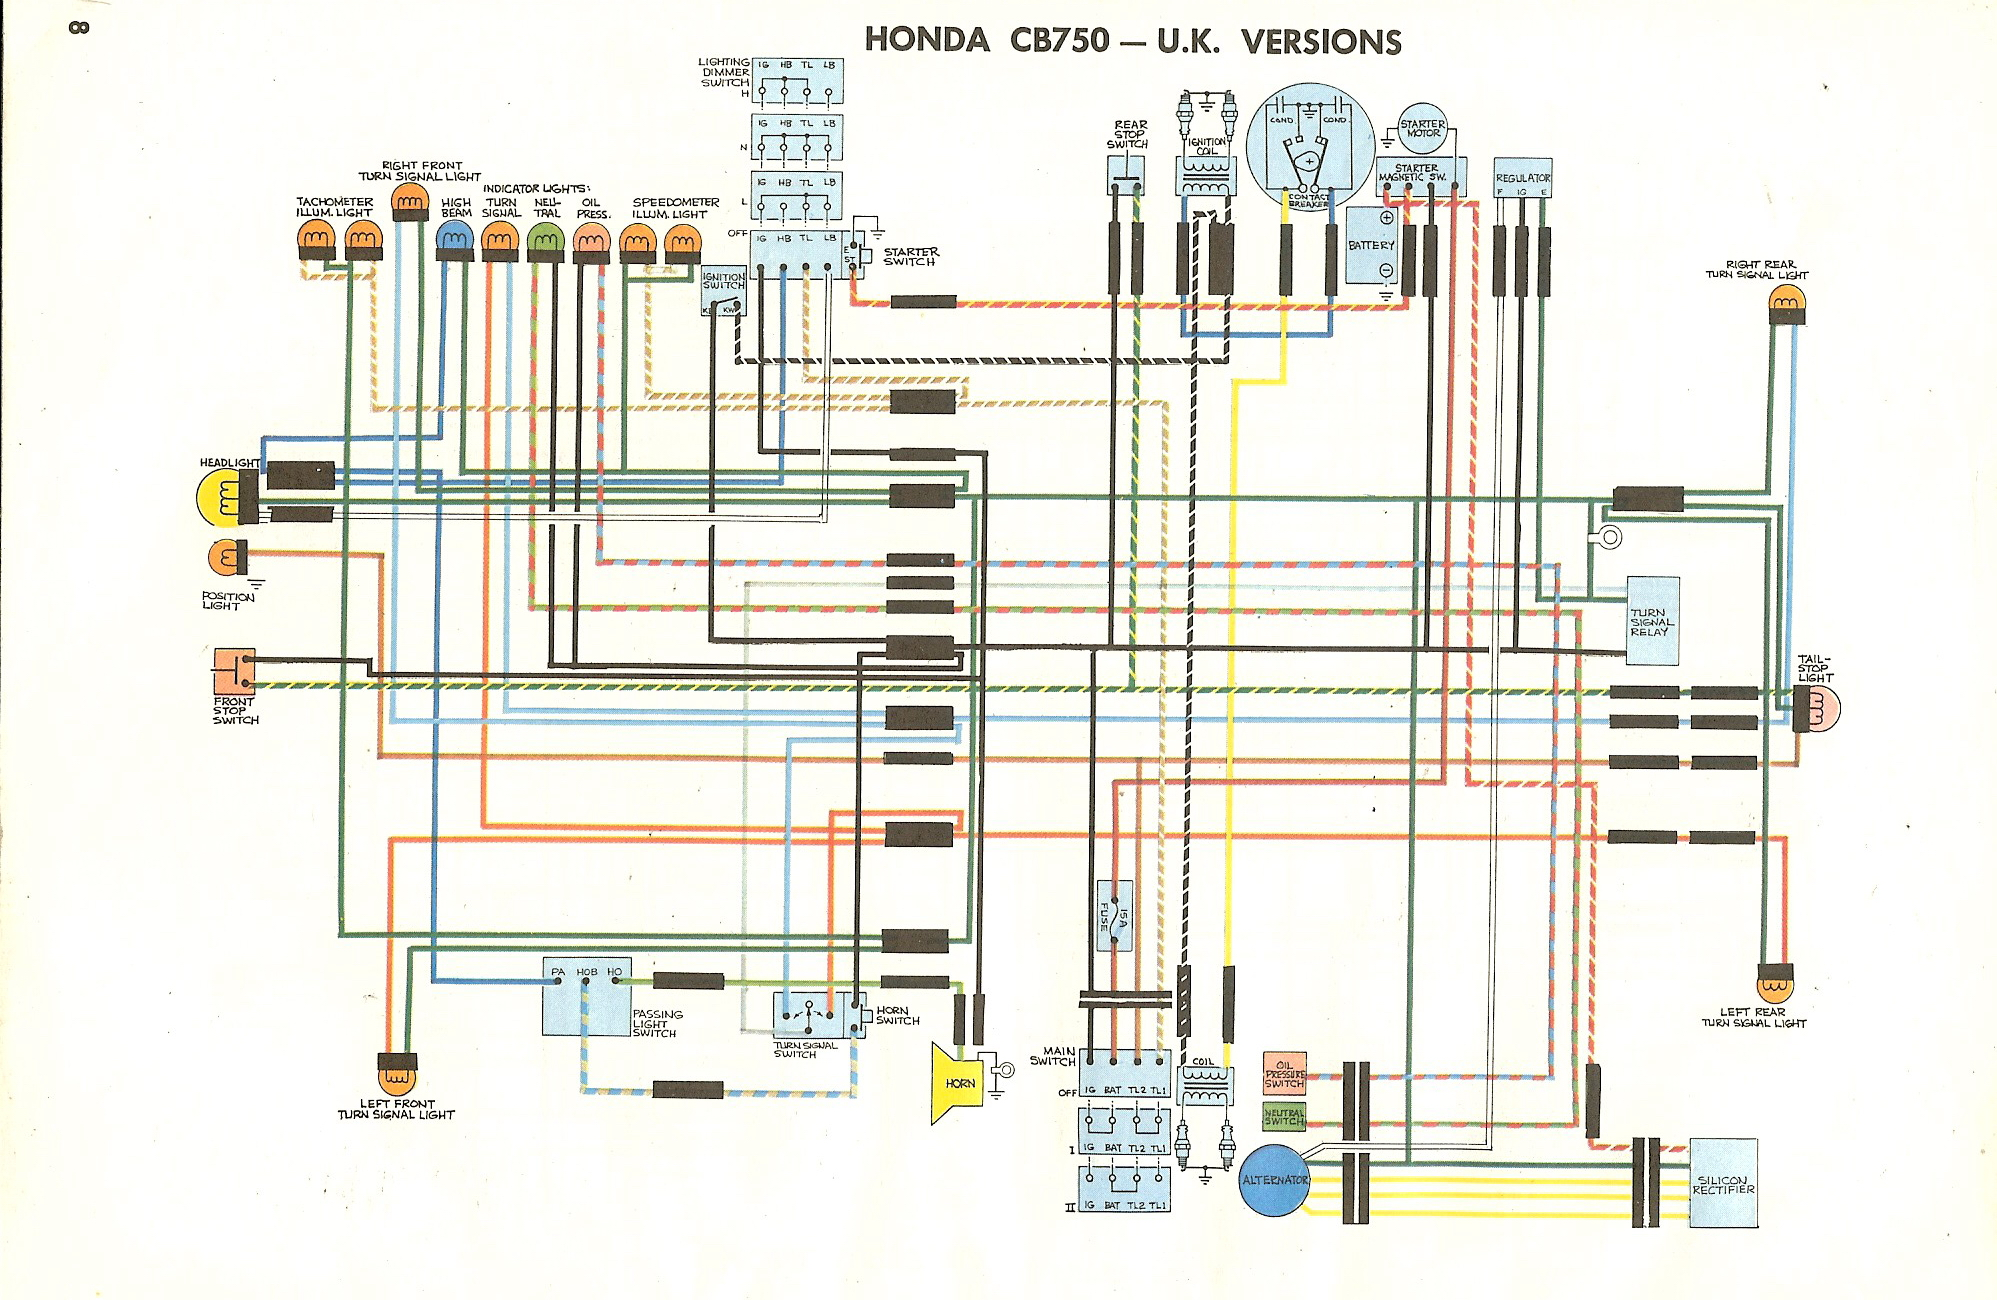 WD750UK 1978 honda cb750 wiring diagram honda cb 700 ignition wire diagram wiring diagram for a 1979 honda cb750f at soozxer.org